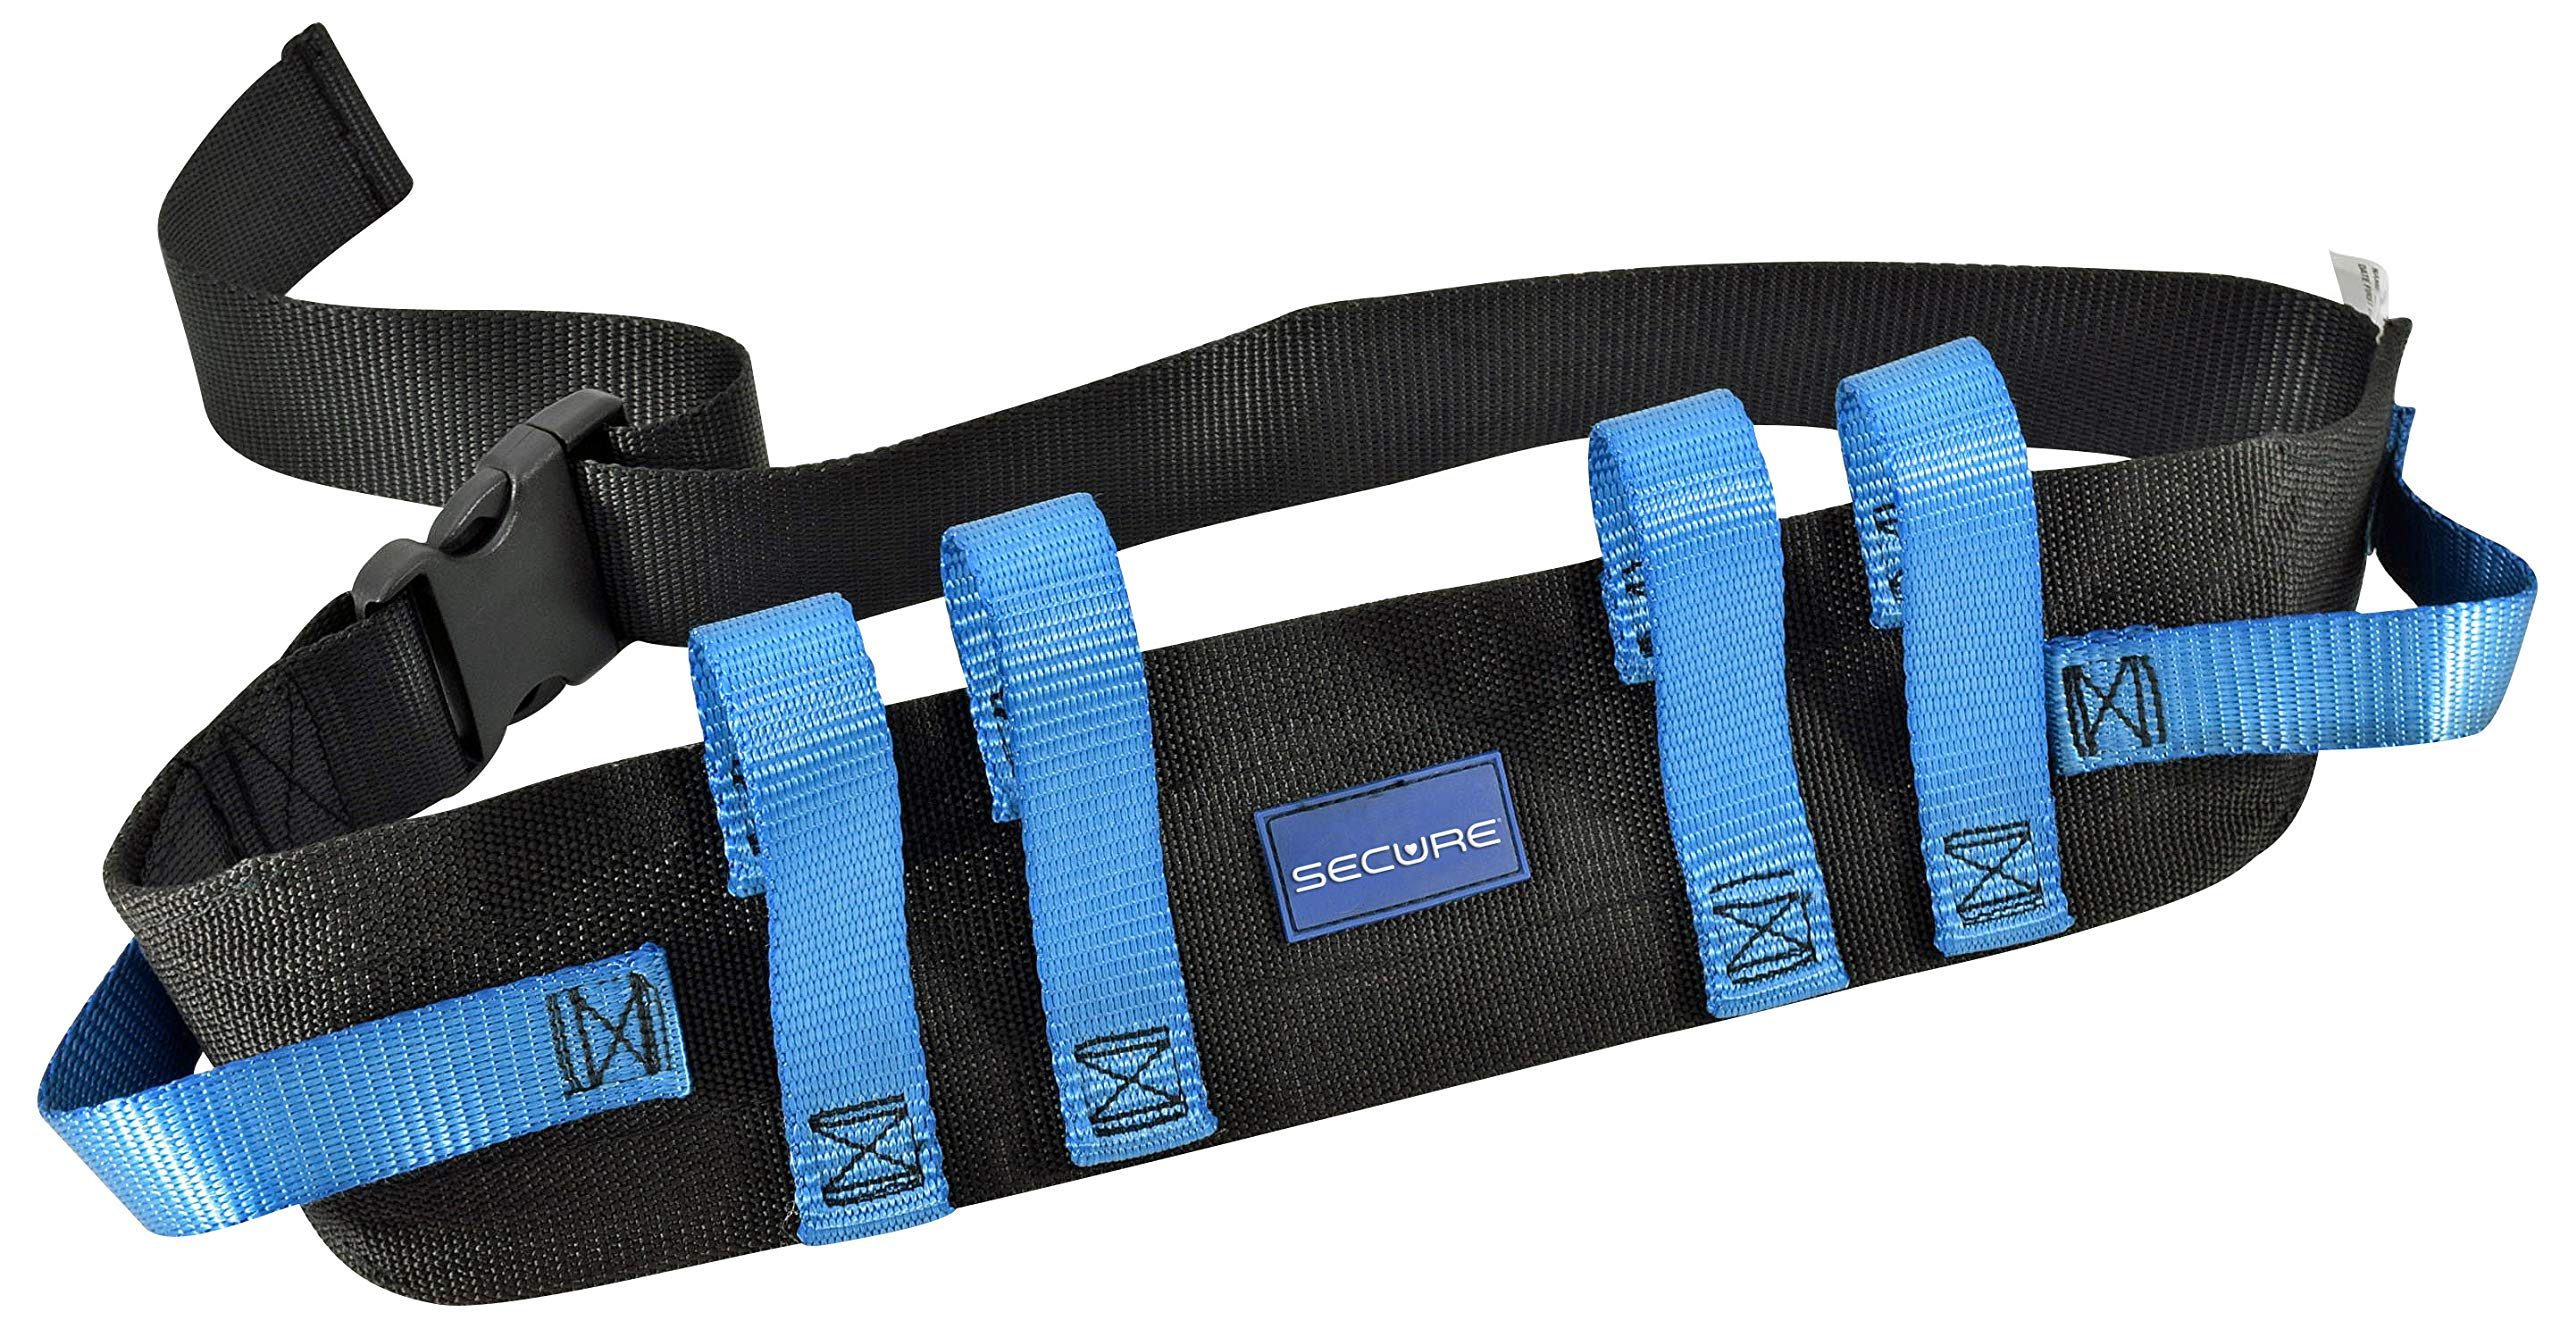 """Secure Transfer Gait Belt with Handles and Quick Release Buckle - Elderly Patient Walking Ambulation Assist Mobility Aid (52""""L x 4""""W, Blue Handle (Quick Release Buckle))"""